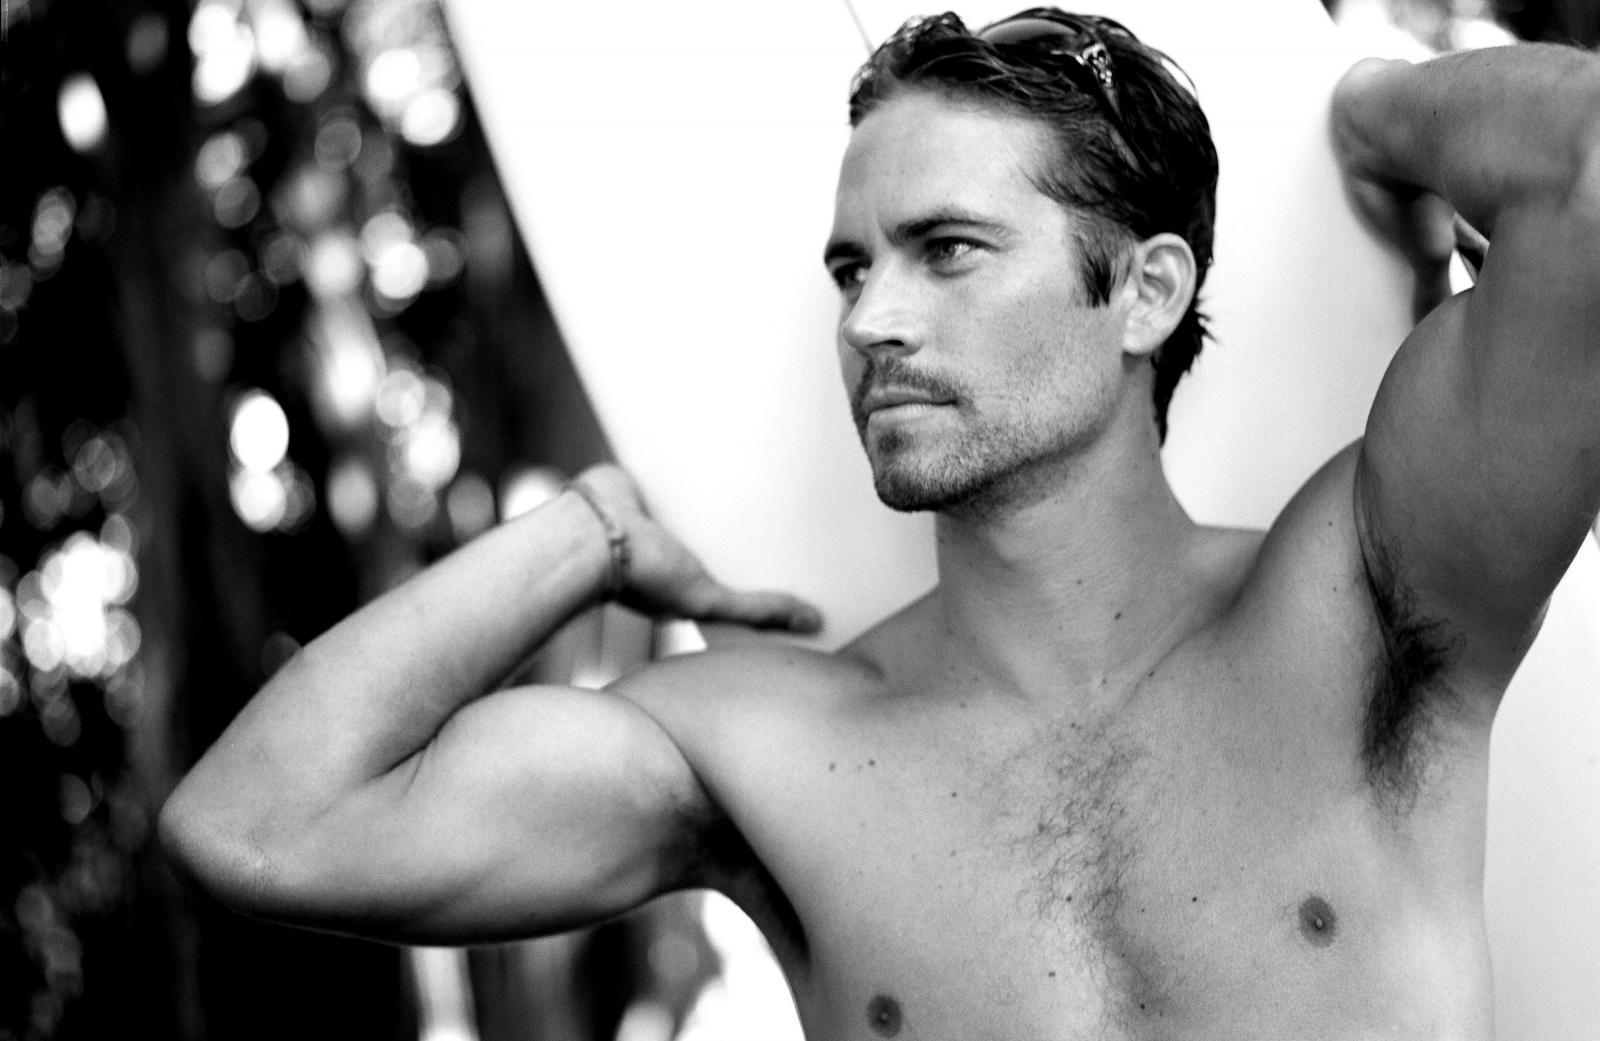 paul walker dead at 40, paul walker car crash, ocala, ocala news, ocala post, op